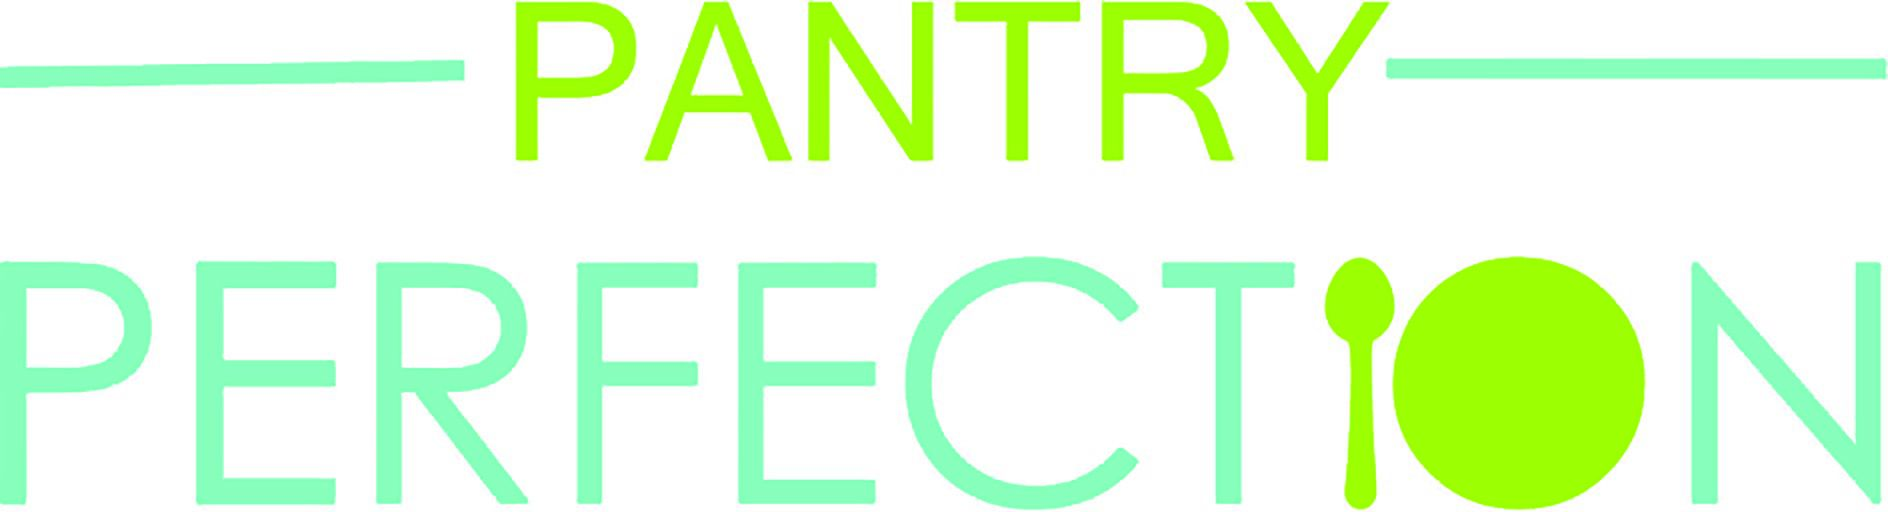 pantryperfection Logo